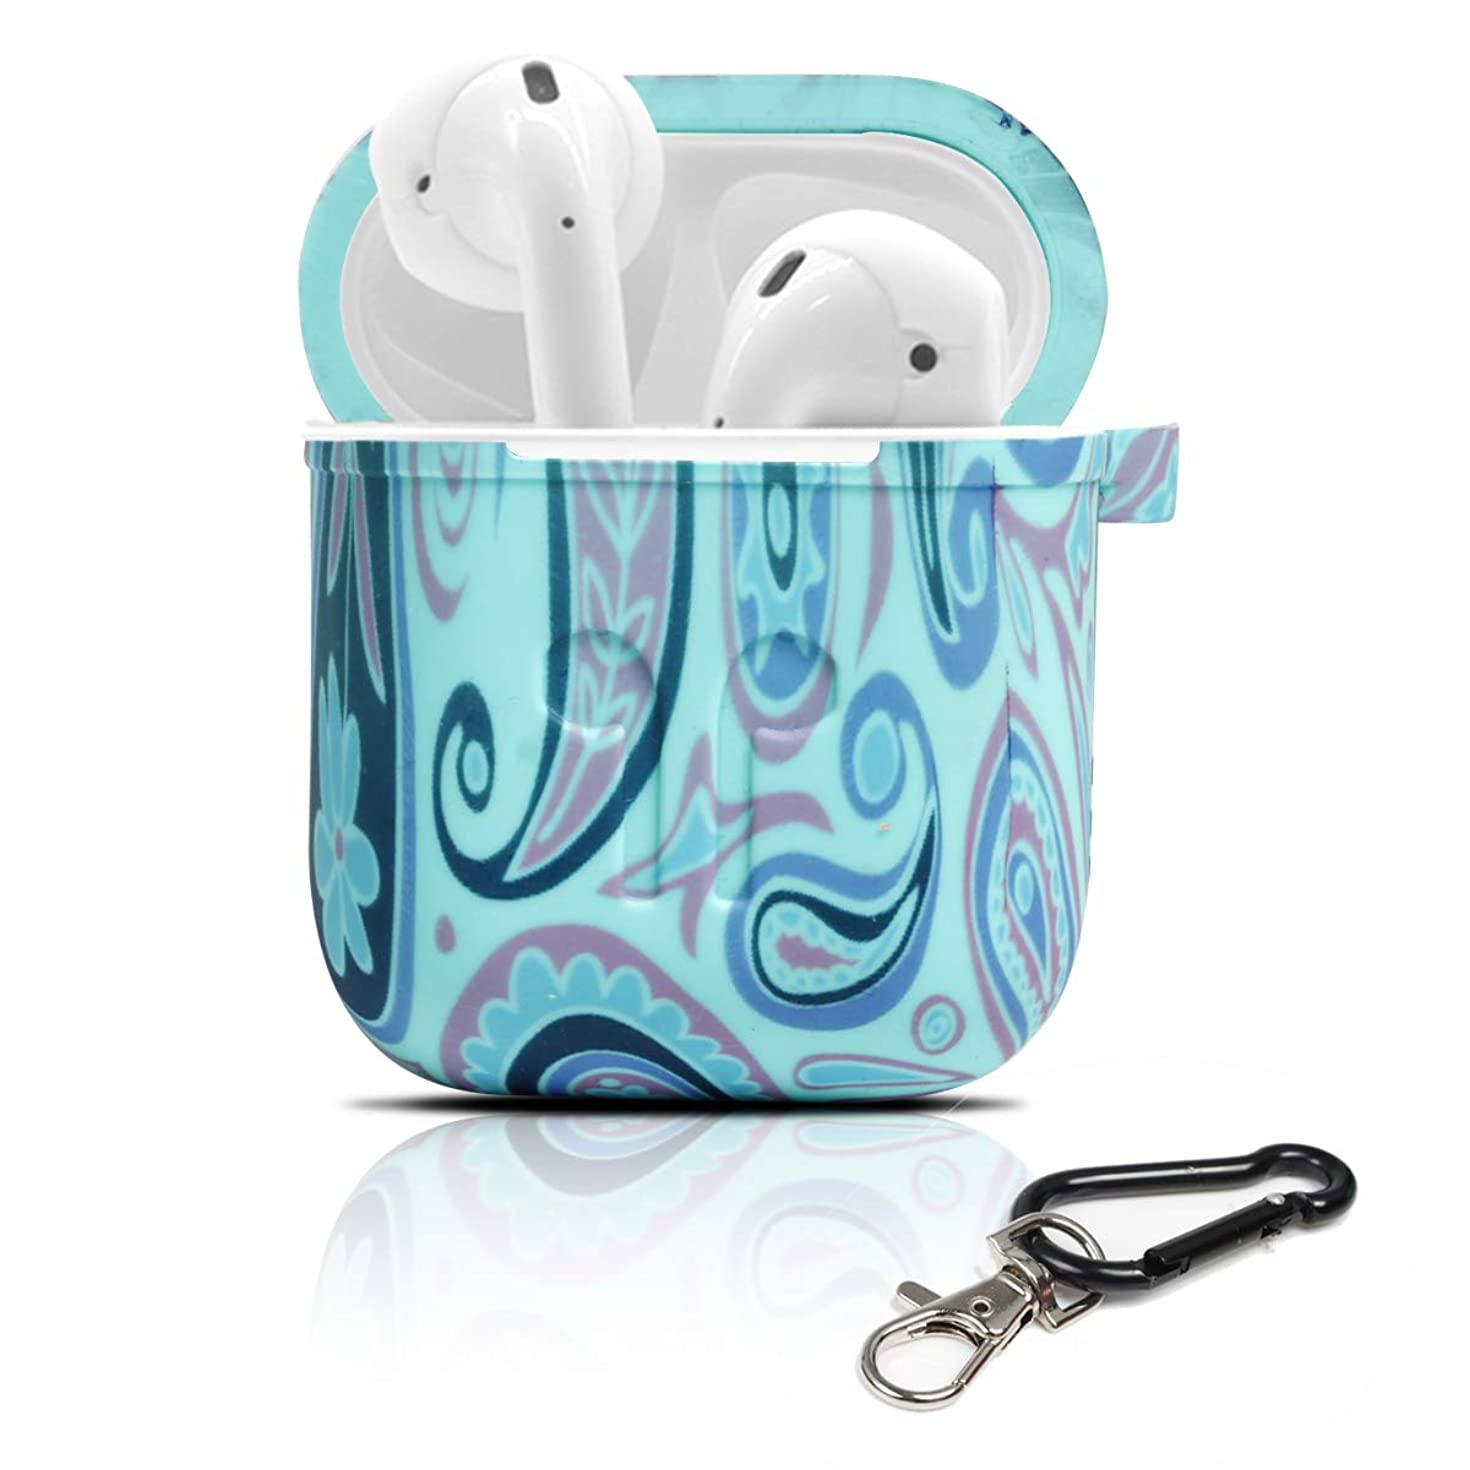 PAMISO Protective Cover Compatible for Airpods, Waterproof Colorful Silicone Skin and Cover with Keychain